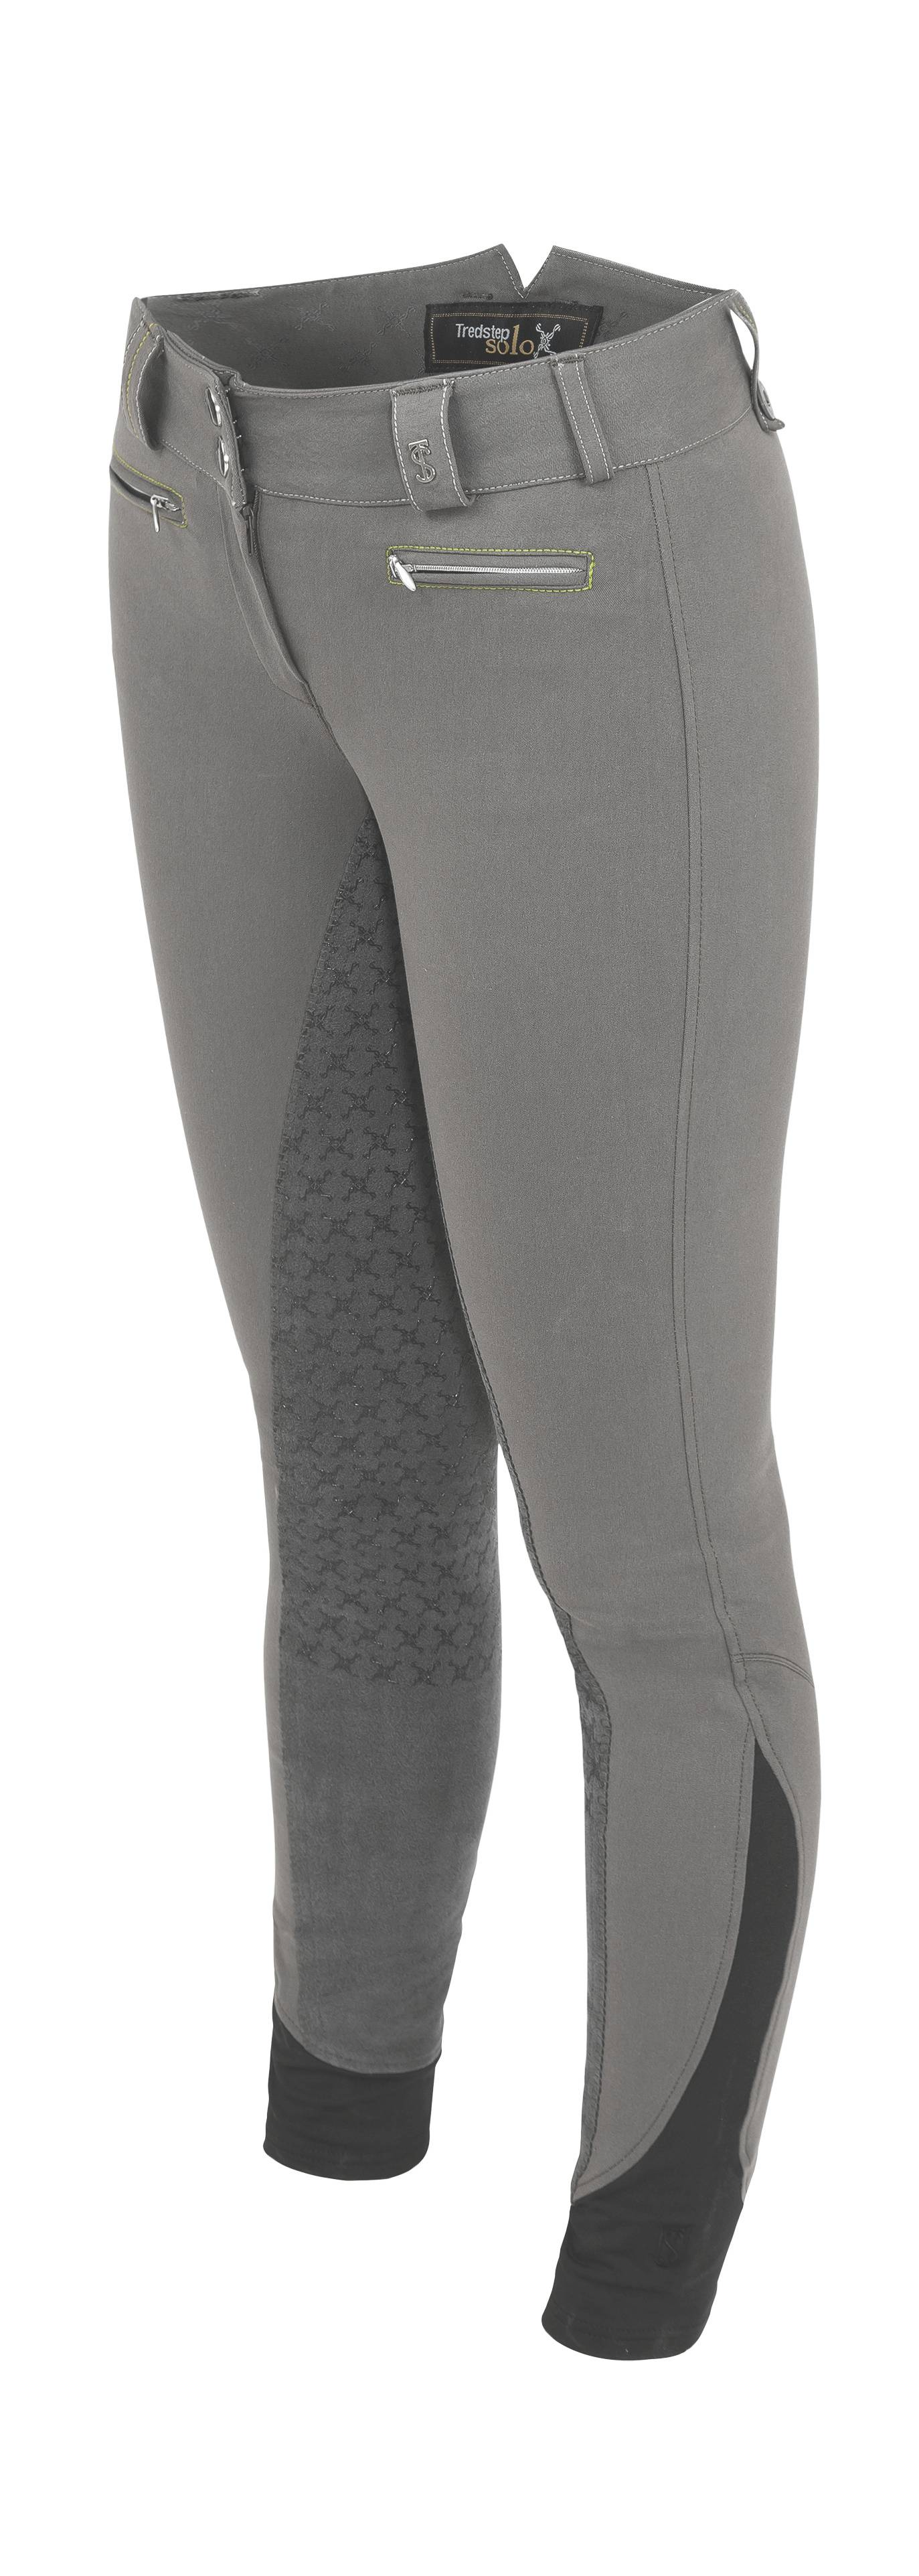 Tredstep Solo Grip Full Seat Breech